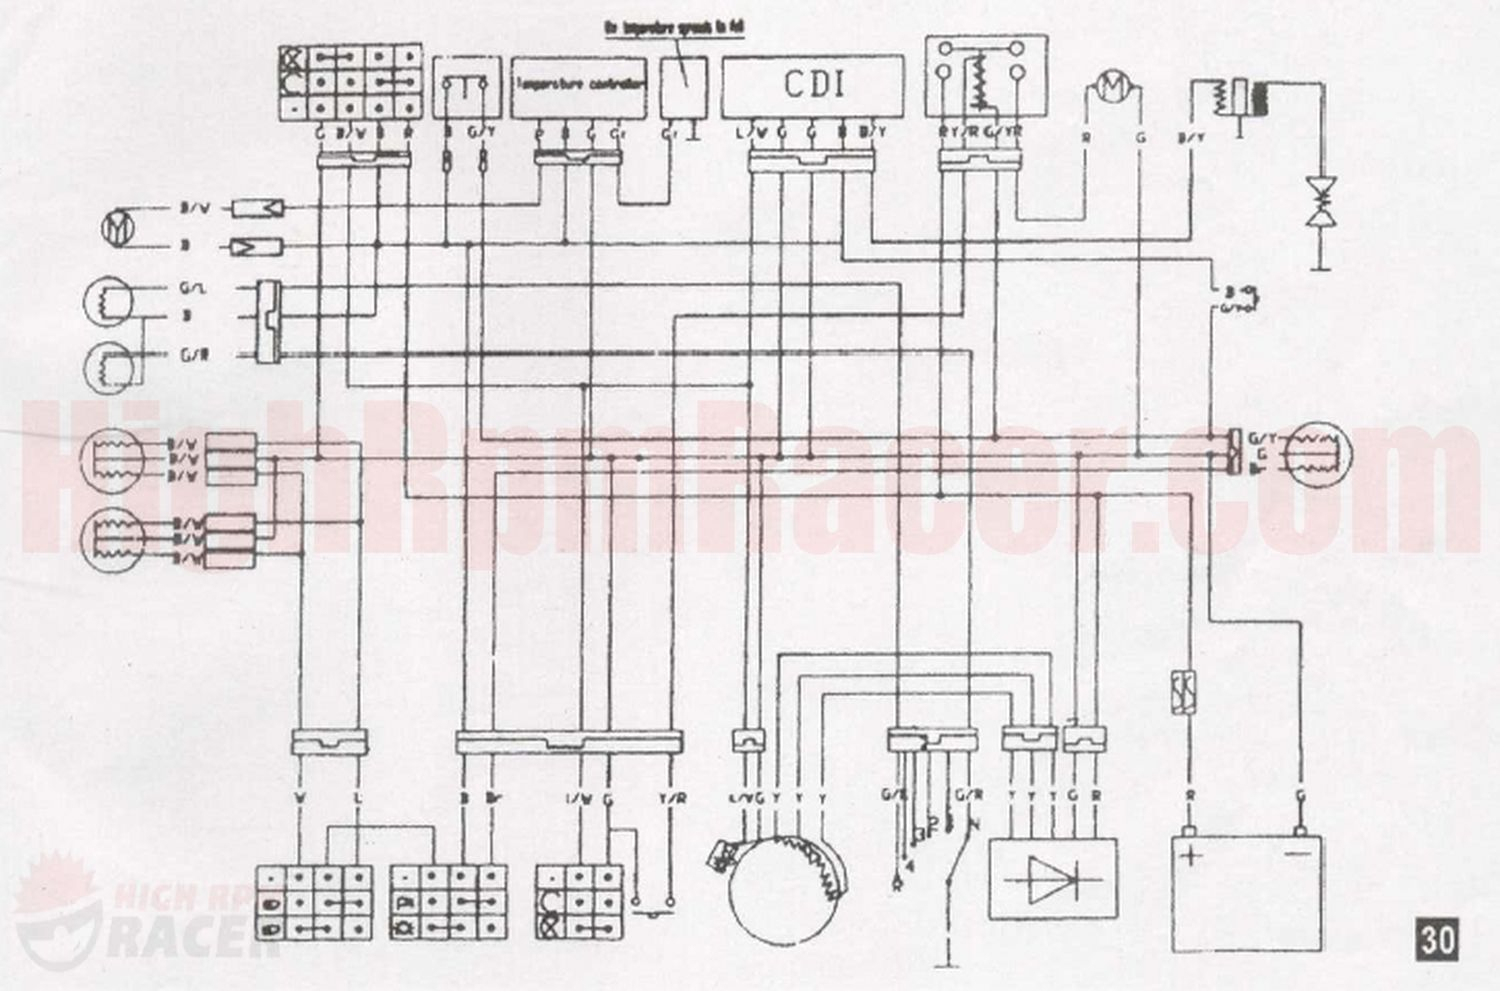 Wiring Diagram For Chinese Four Wheeler - Wiring Diagram Detailed - Chinese Atv Wiring Diagram 110